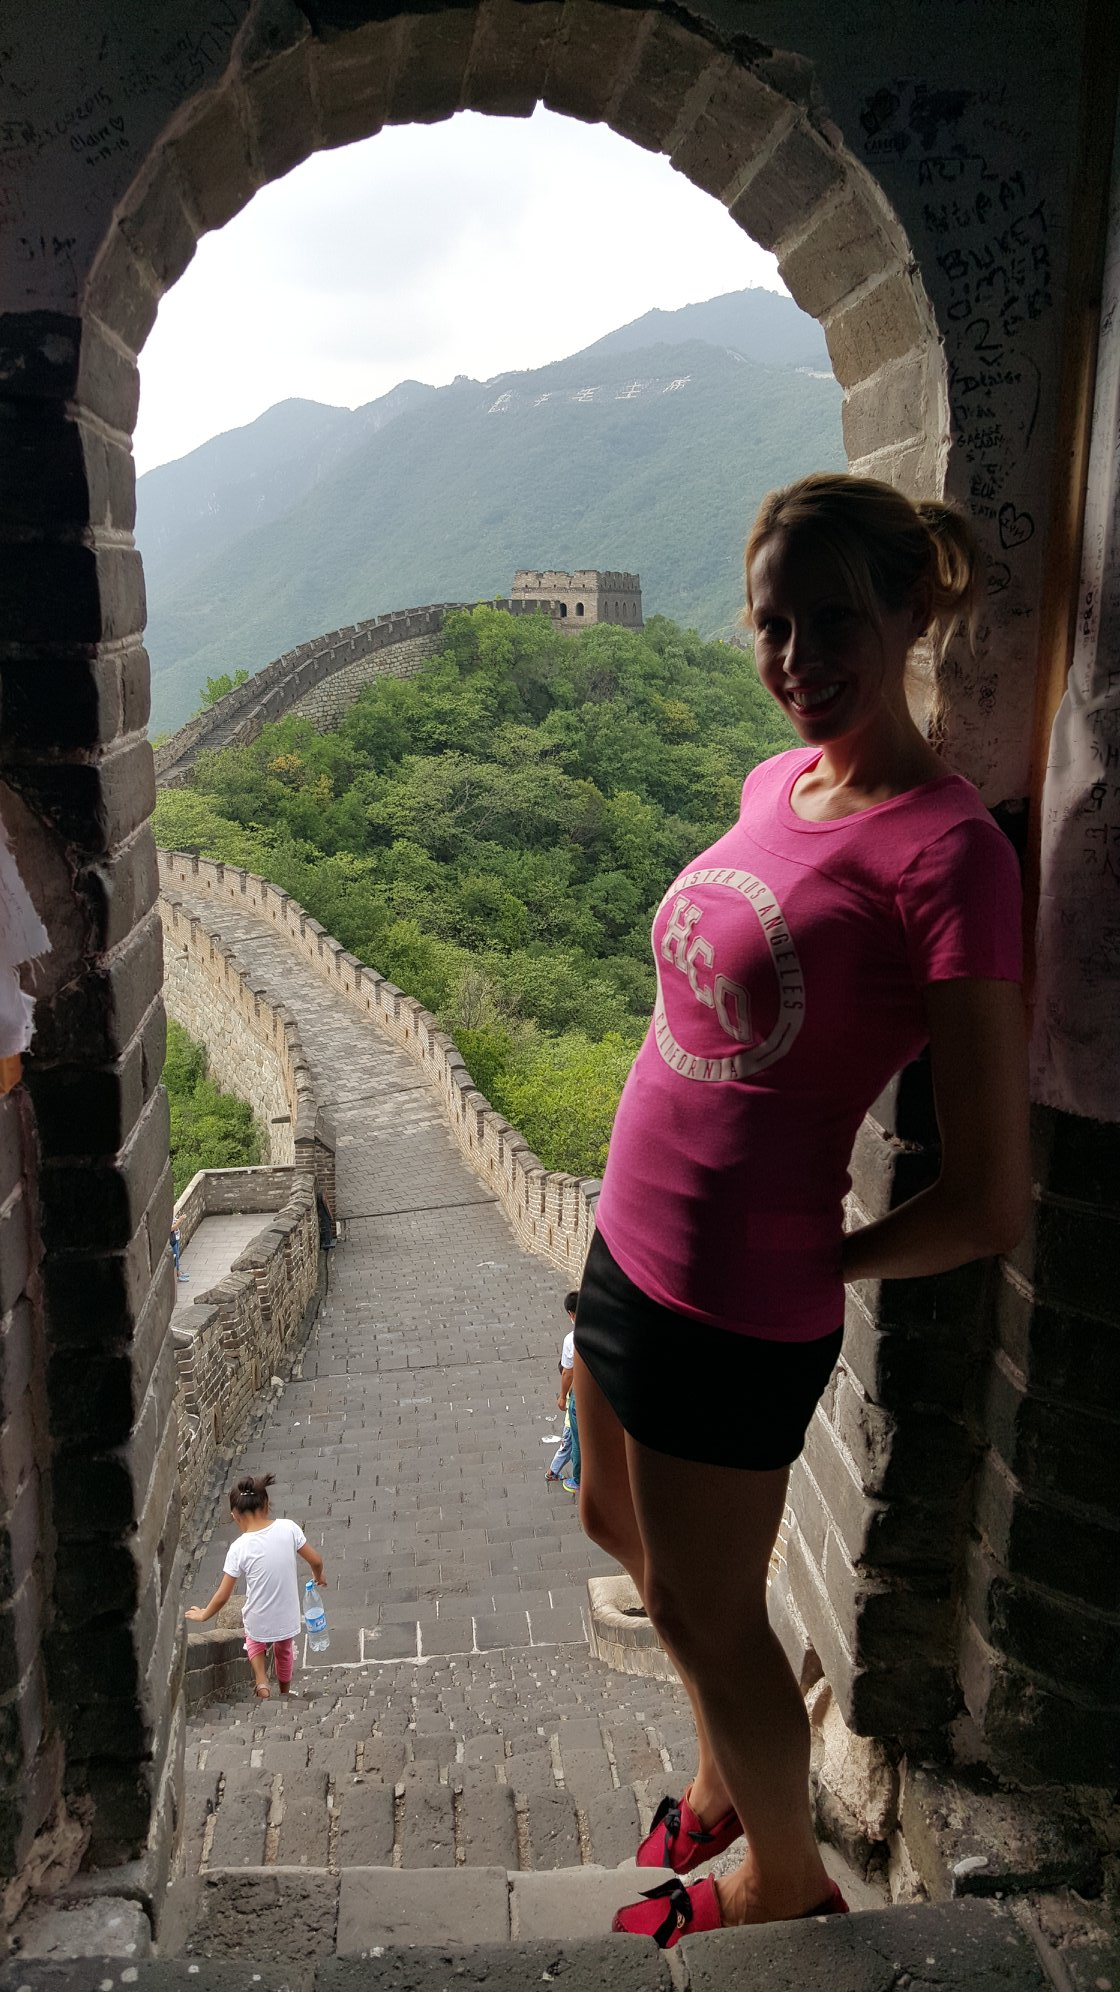 Rachelle Ginsberg at Great wall of China